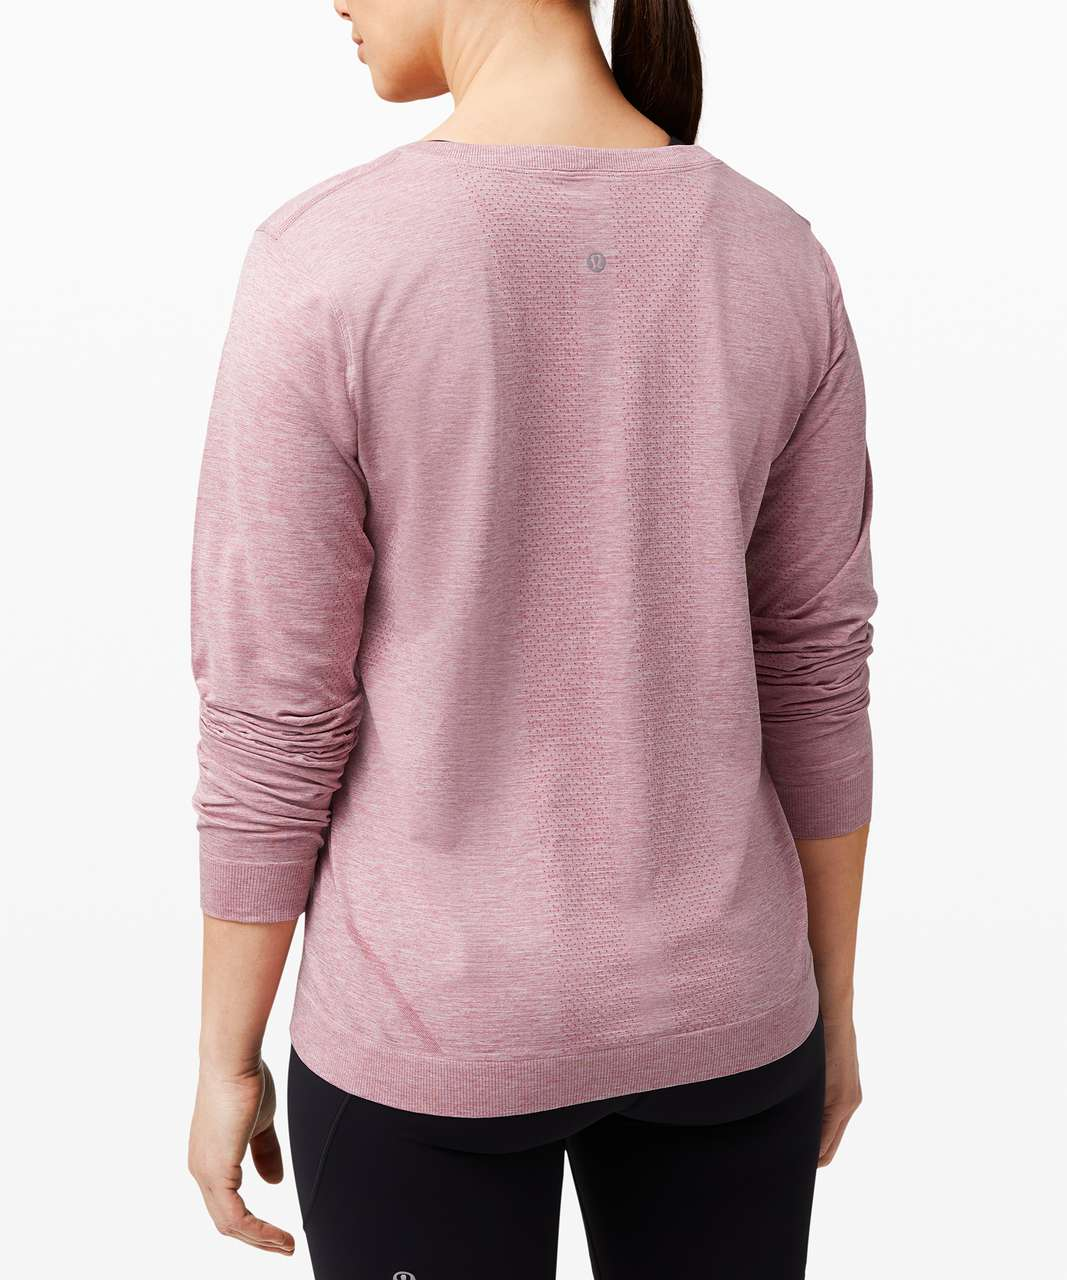 Lululemon Swiftly Relaxed Long Sleeve 2.0 - Cherry Tint / White